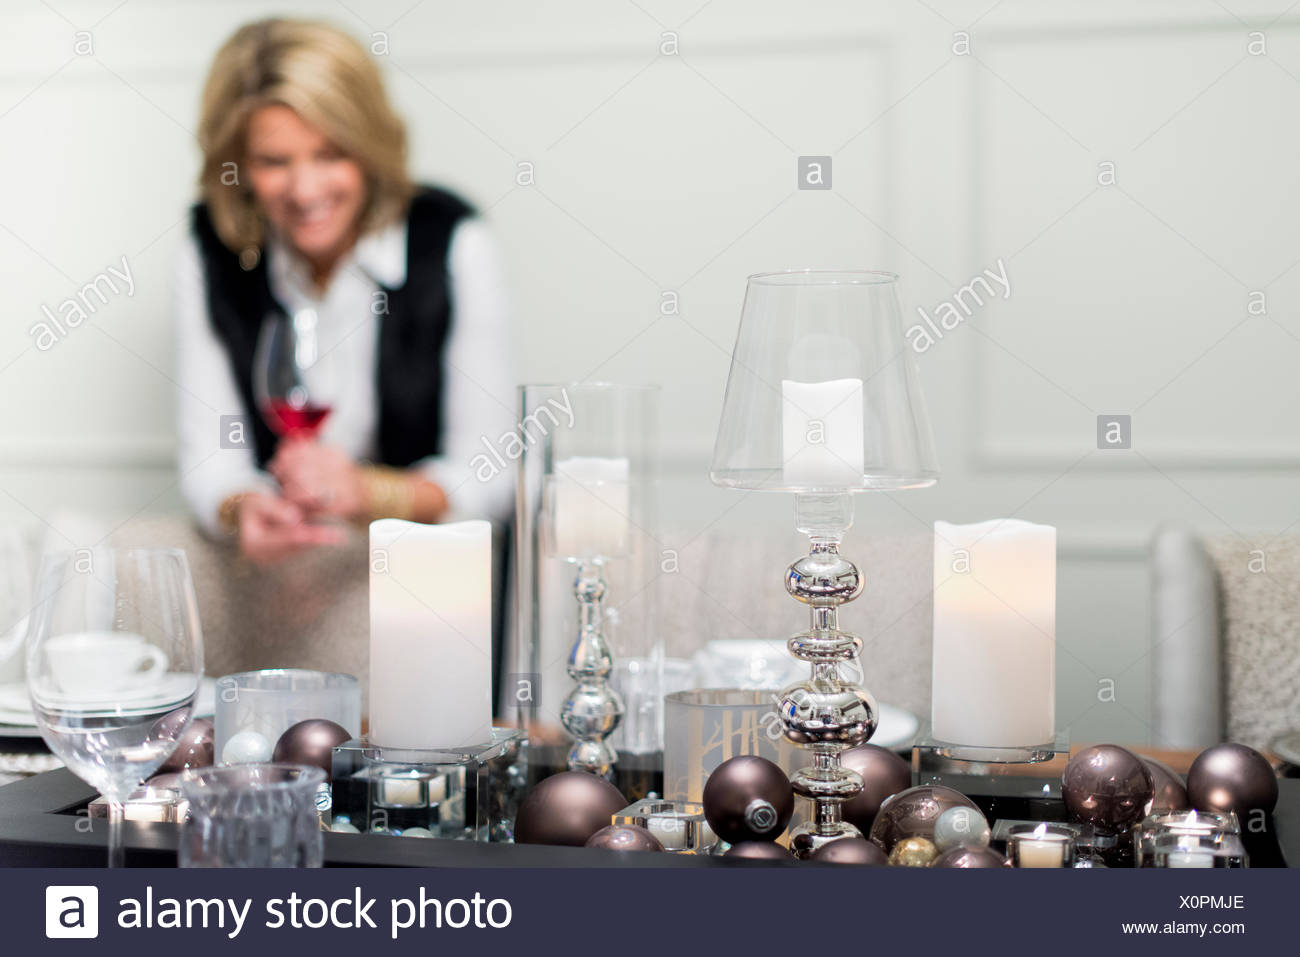 Family together for Christmas in large house with beautiful decorations. Stock Photo